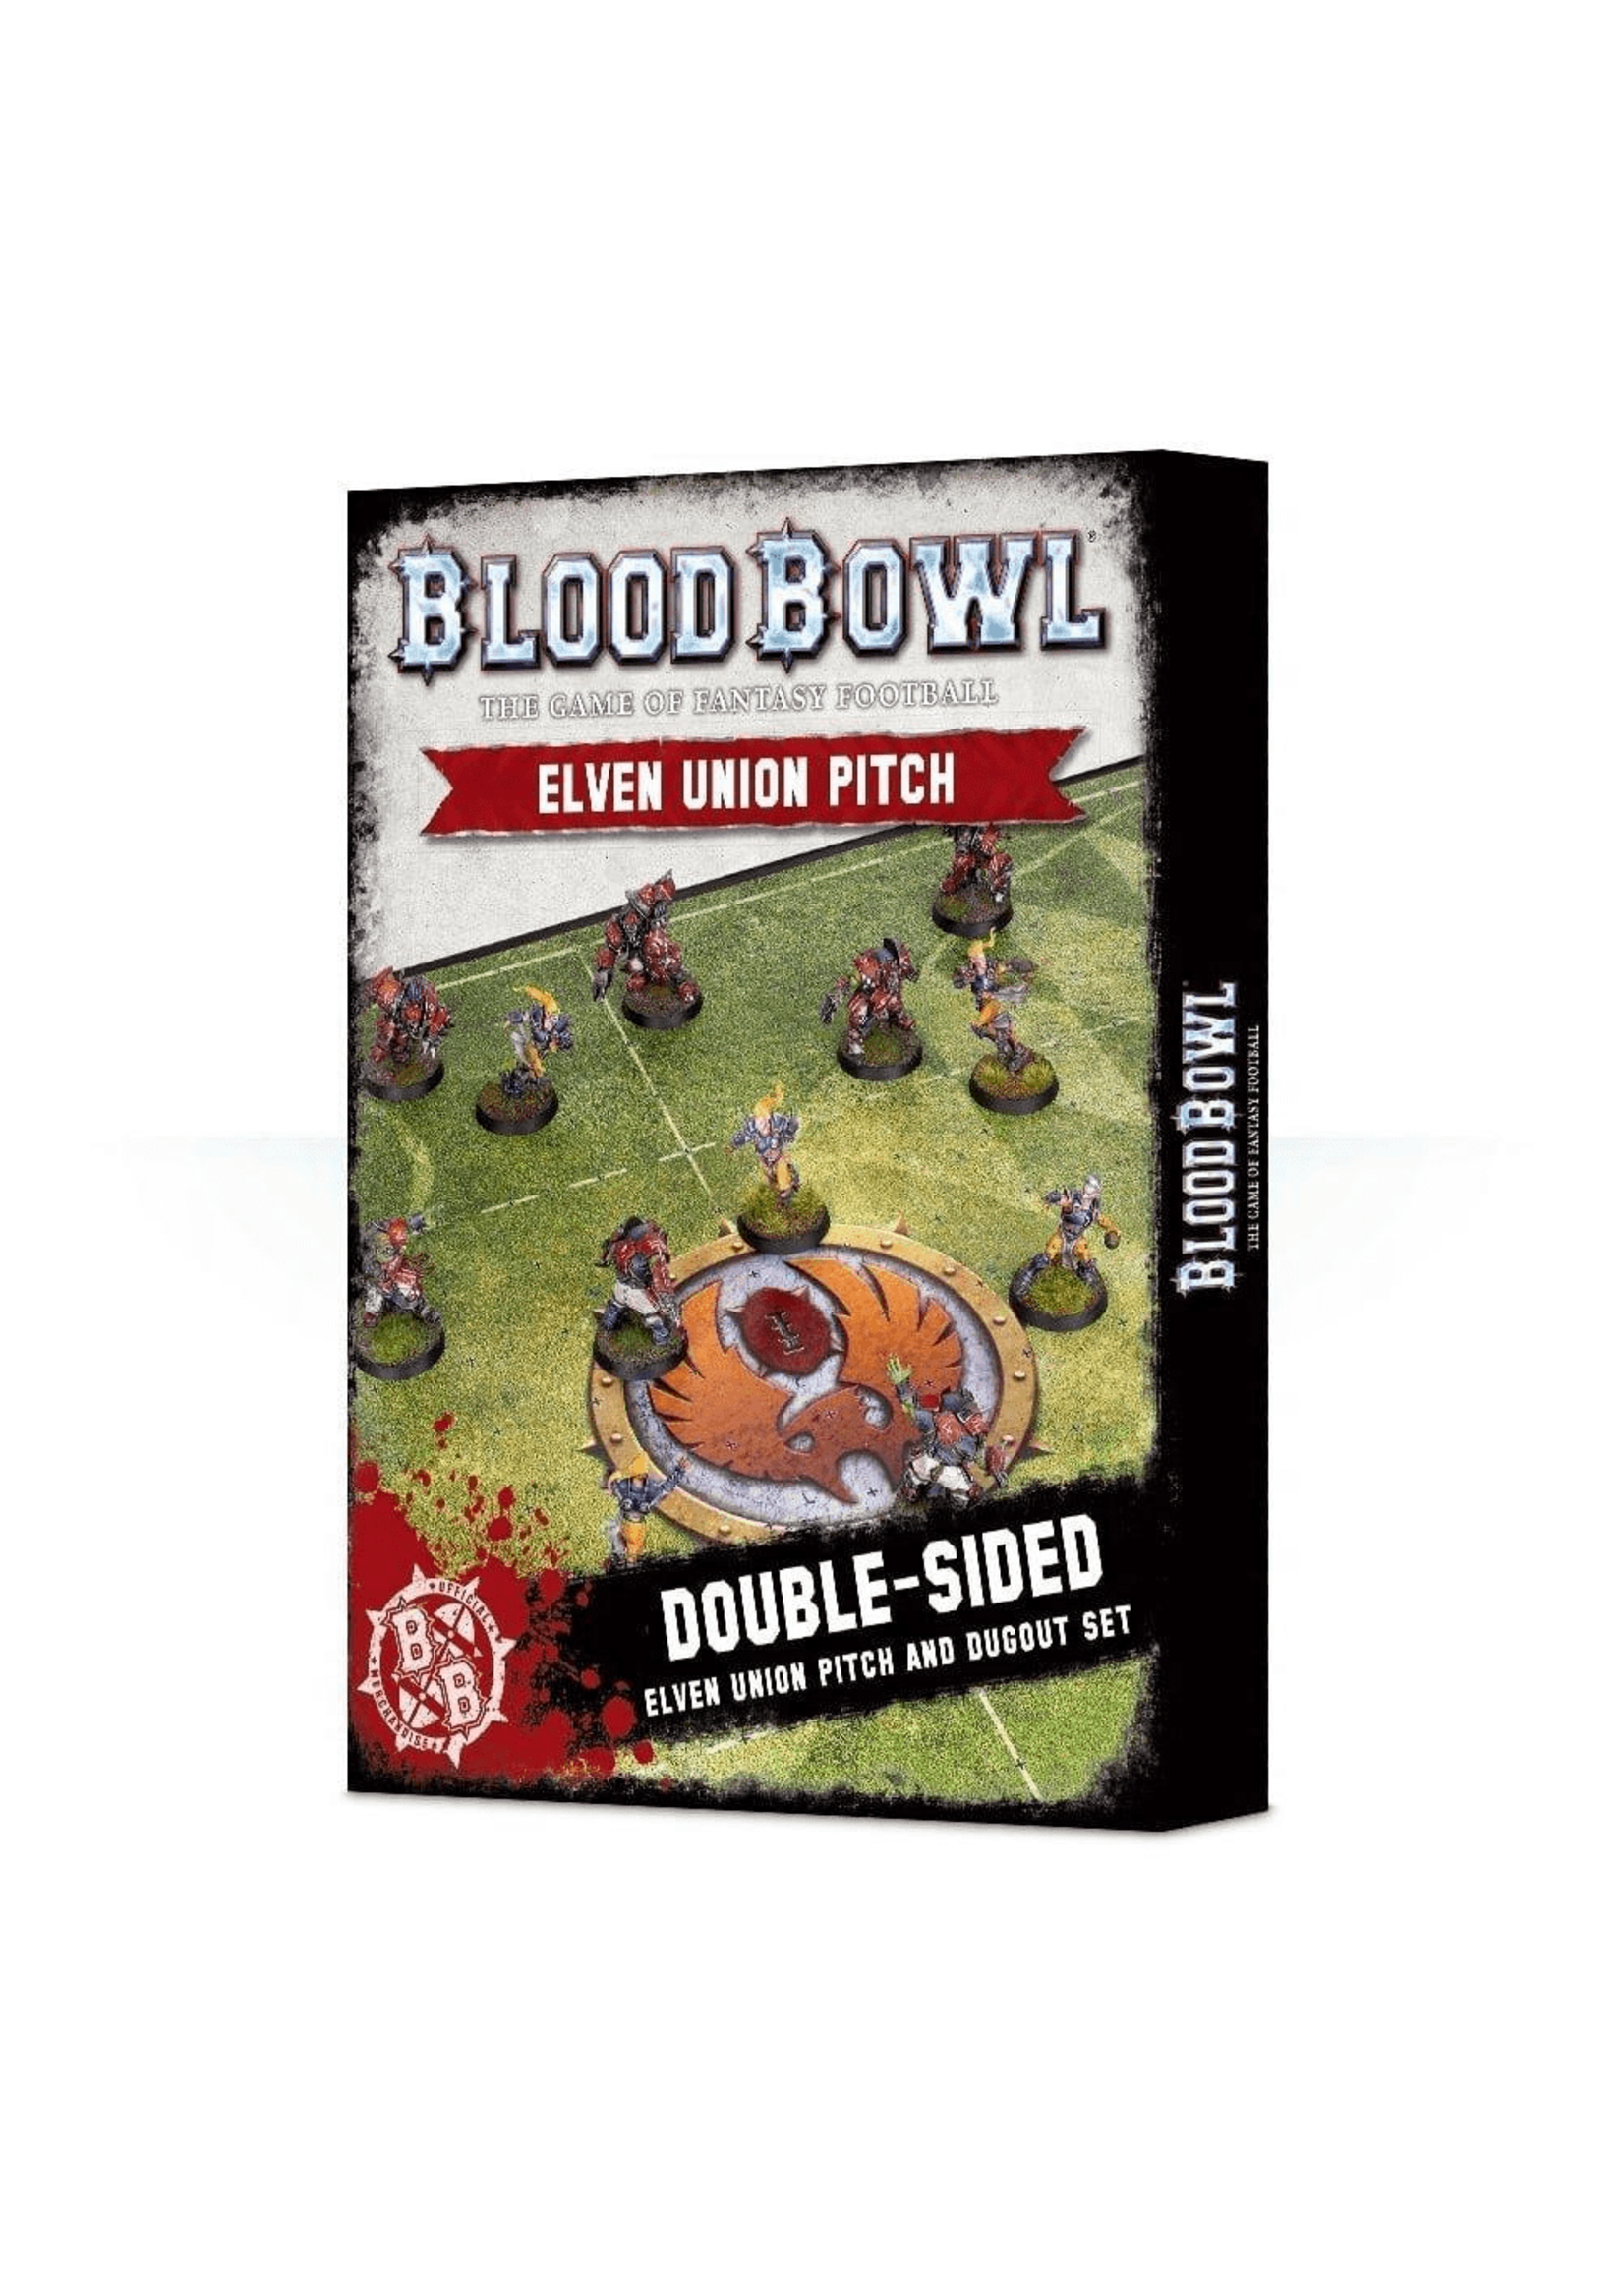 Blood Bowl: Elven Union Pitch and Dugouts